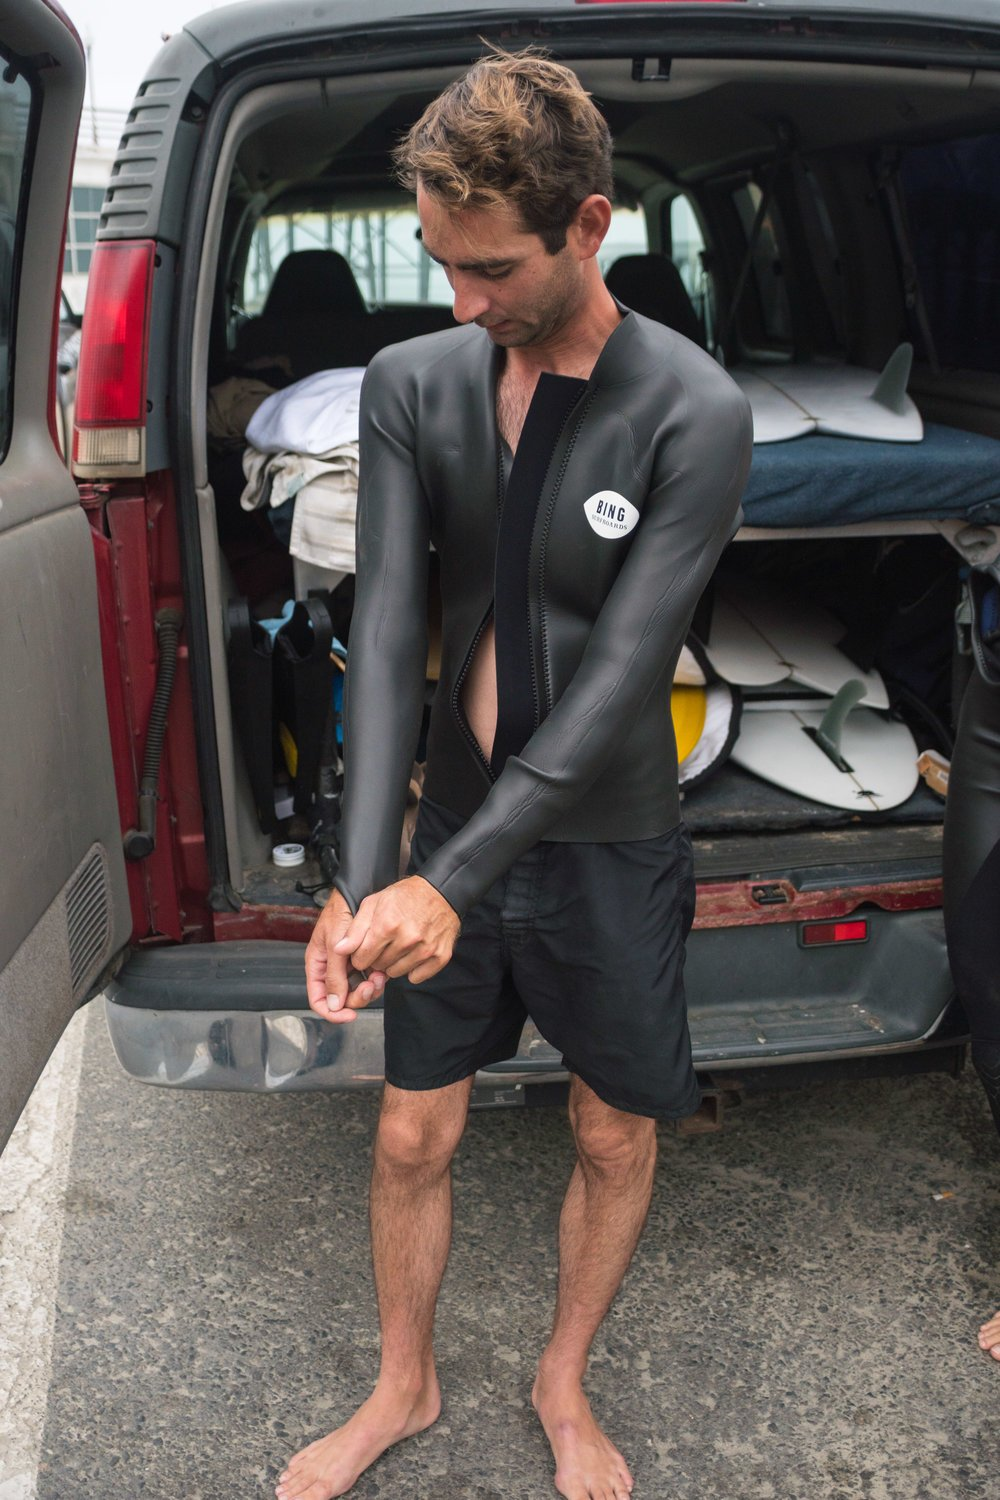 Bing Wetsuits and New Board Models: Concave Keel and Bing Foil 2017